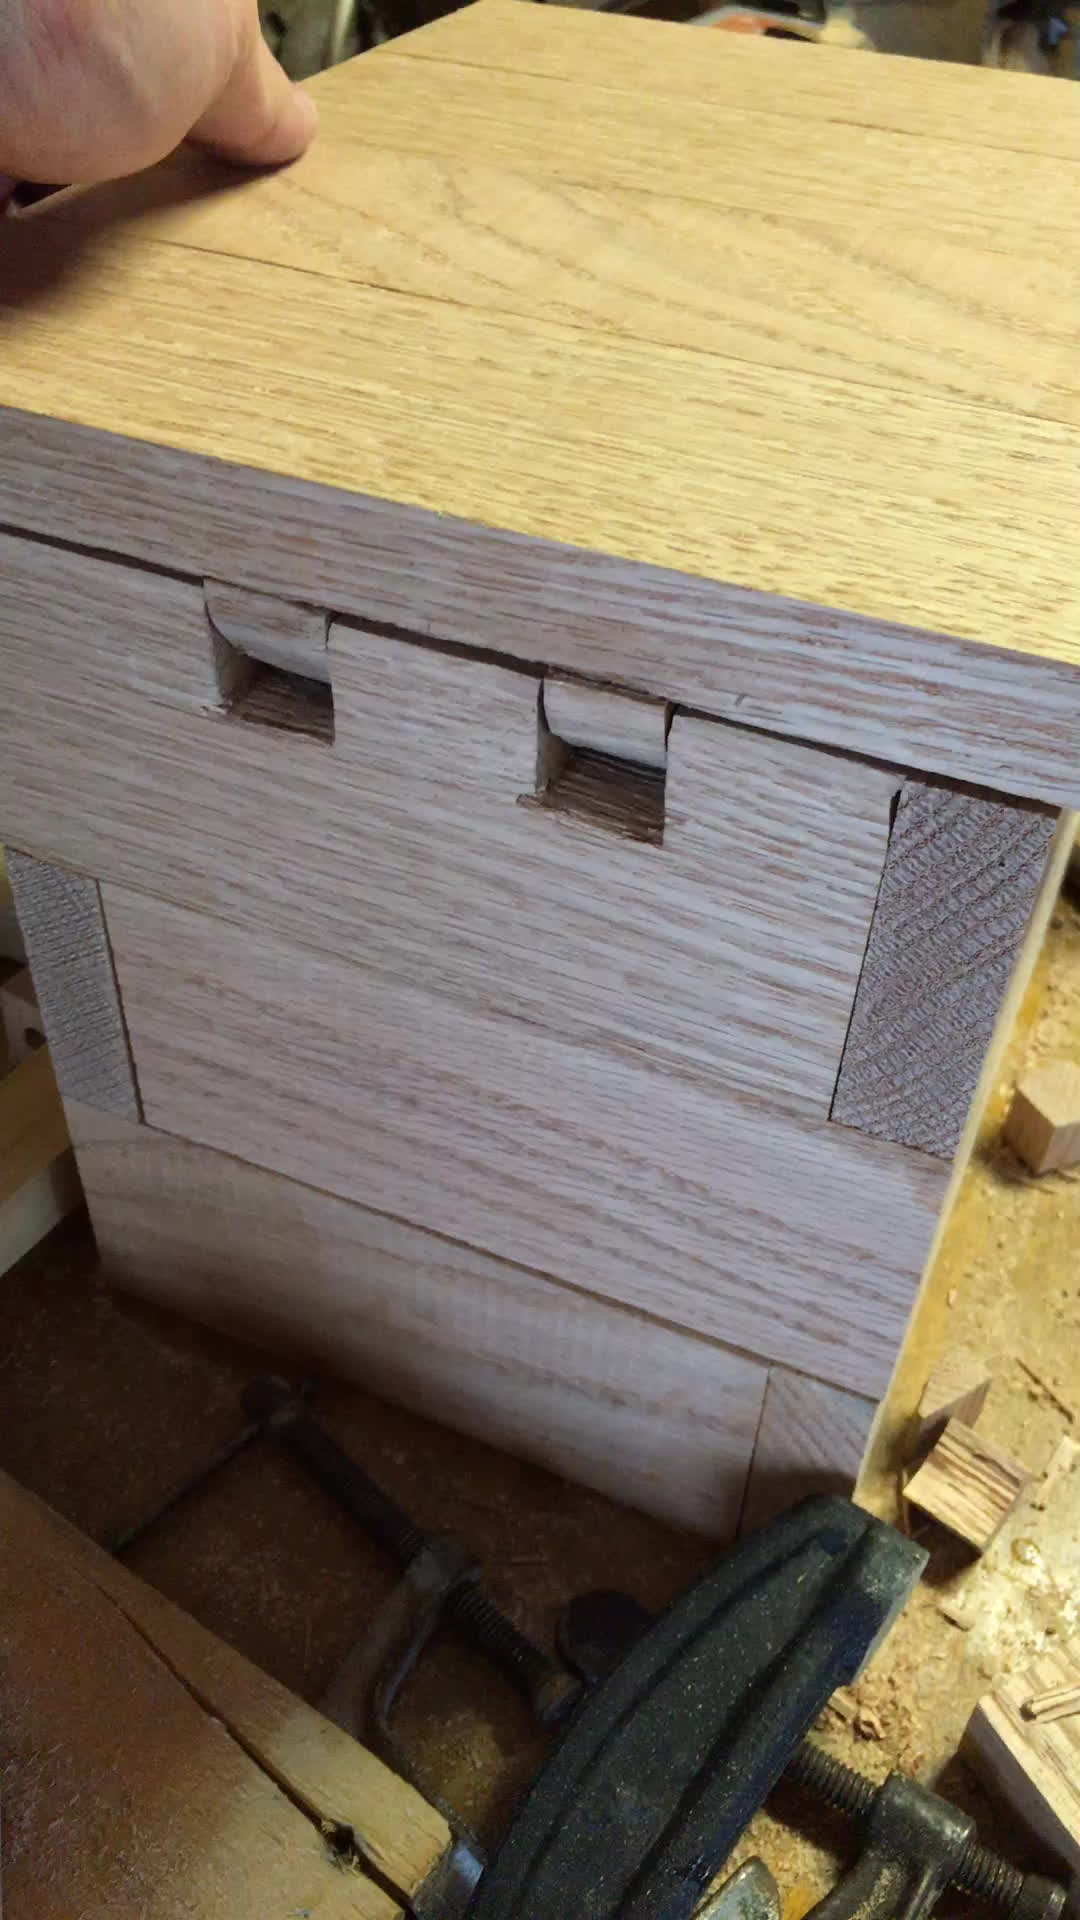 woodworking, Wooden hinges on a birdhouse GIFs